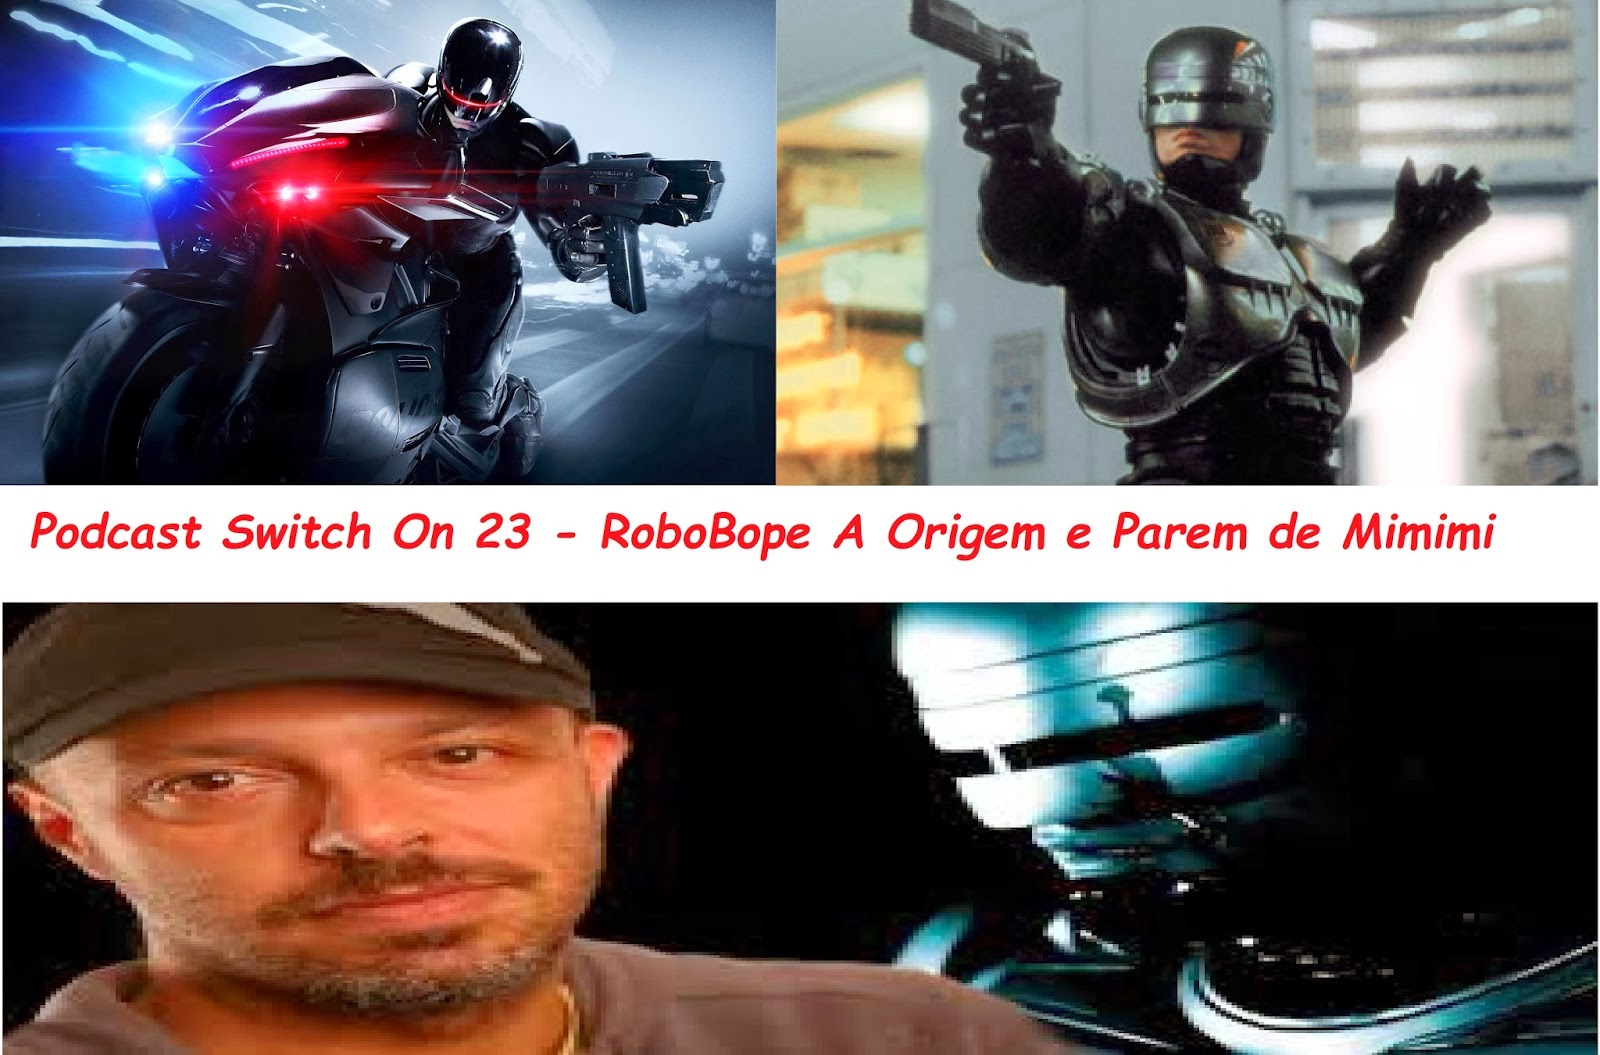 http://interruptornerd.blogspot.com.br/2014/02/podcast-switch-on-23-robobope-origem-e.html